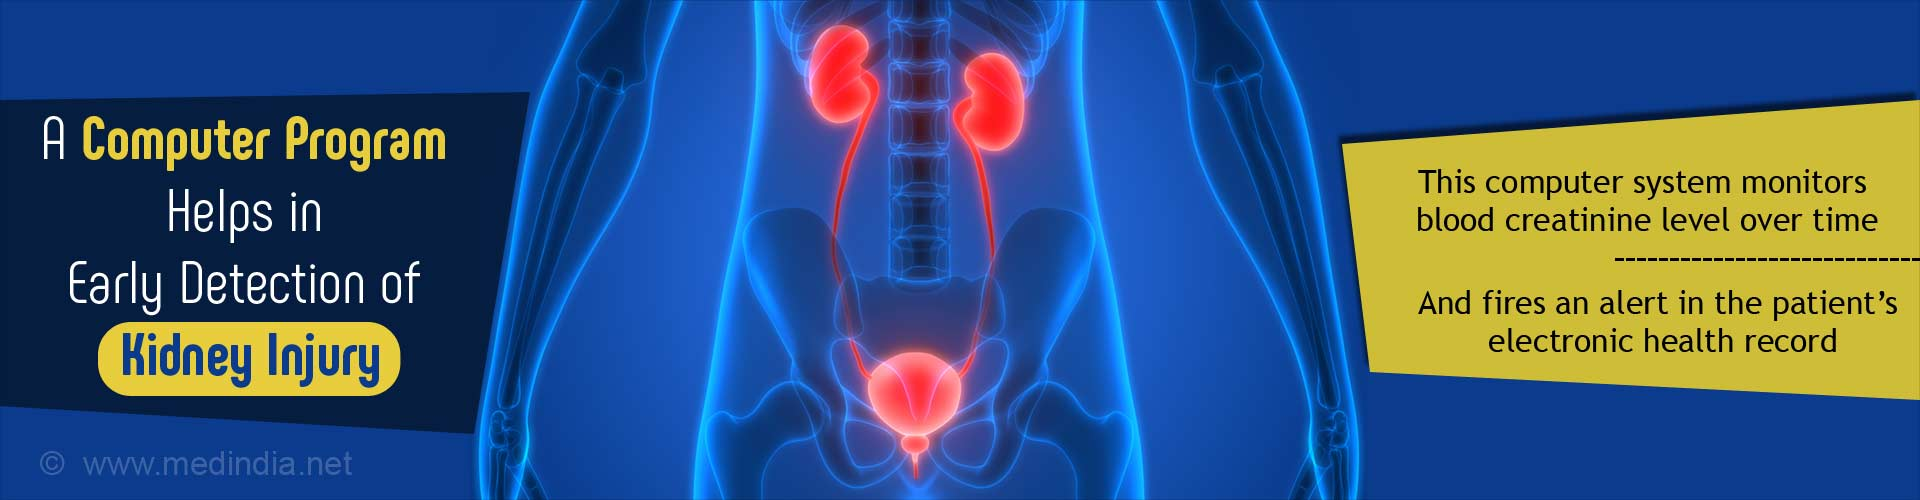 Computer Program Helps in Early Detection of Kidney Injury